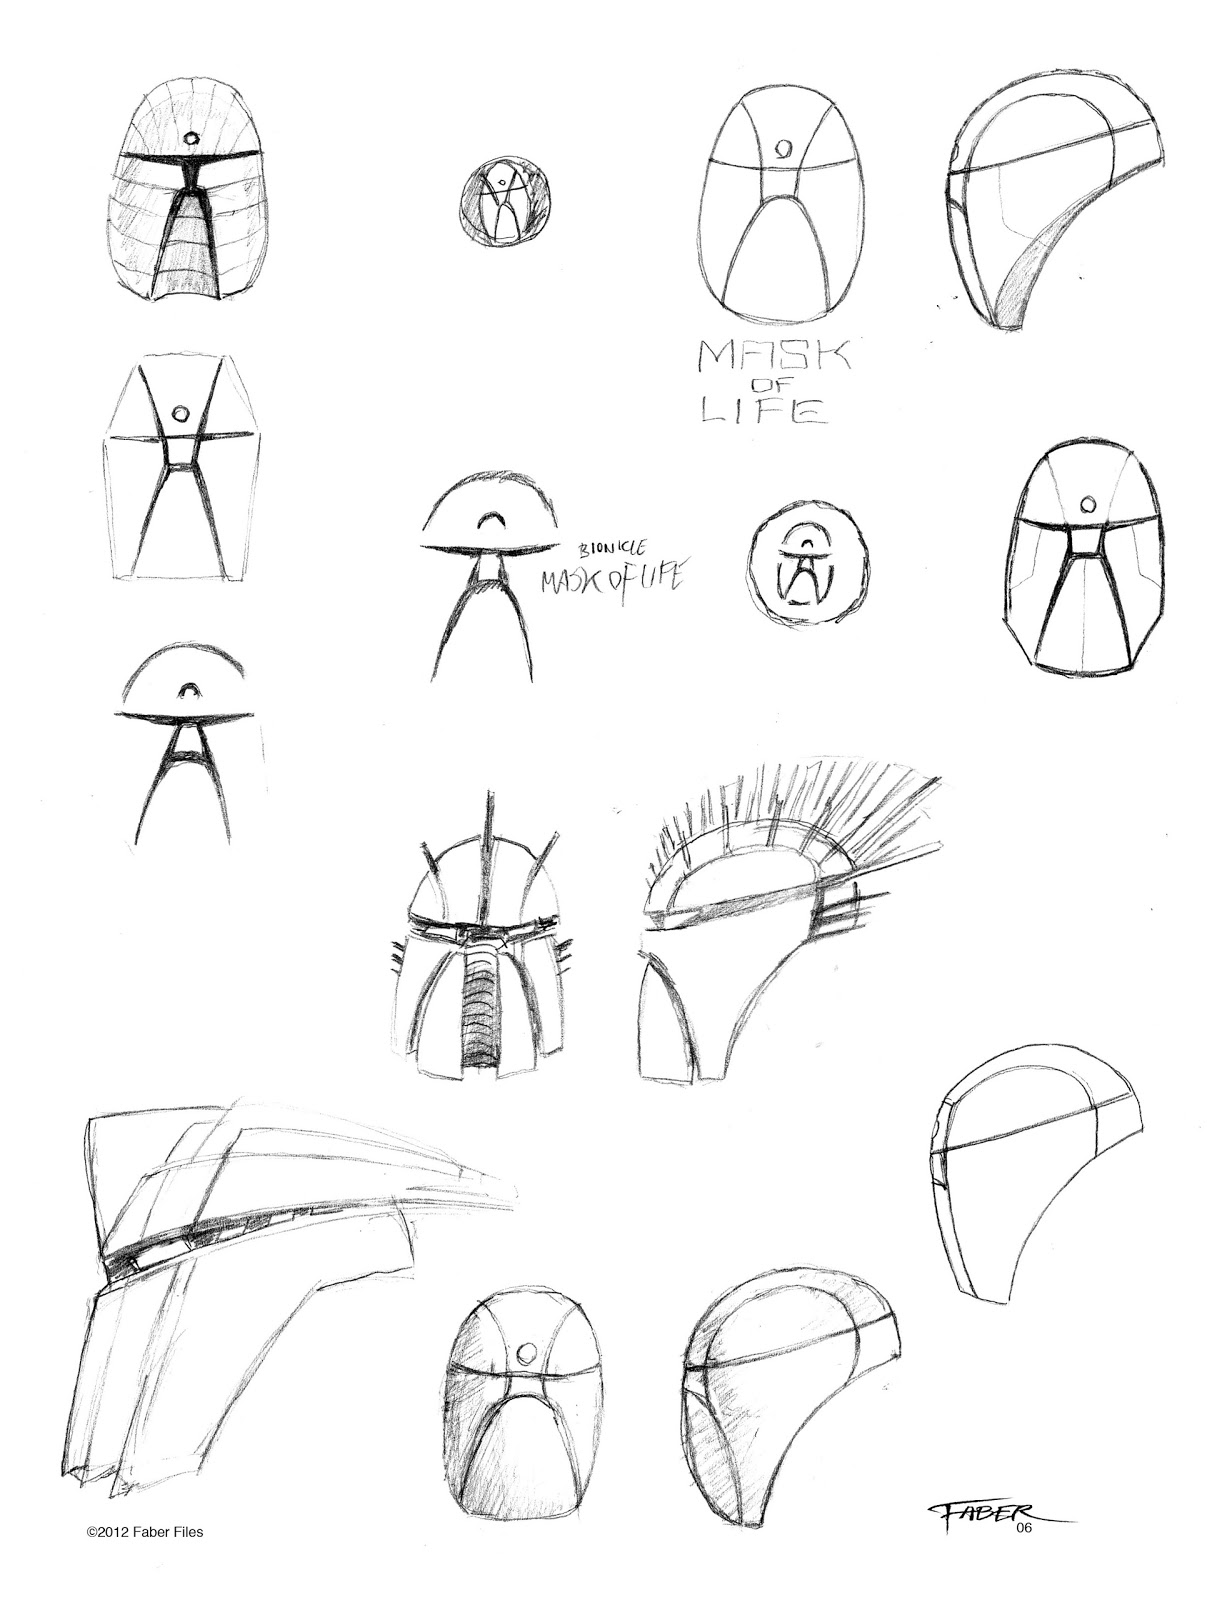 Faber Files Mask Of Life Concept